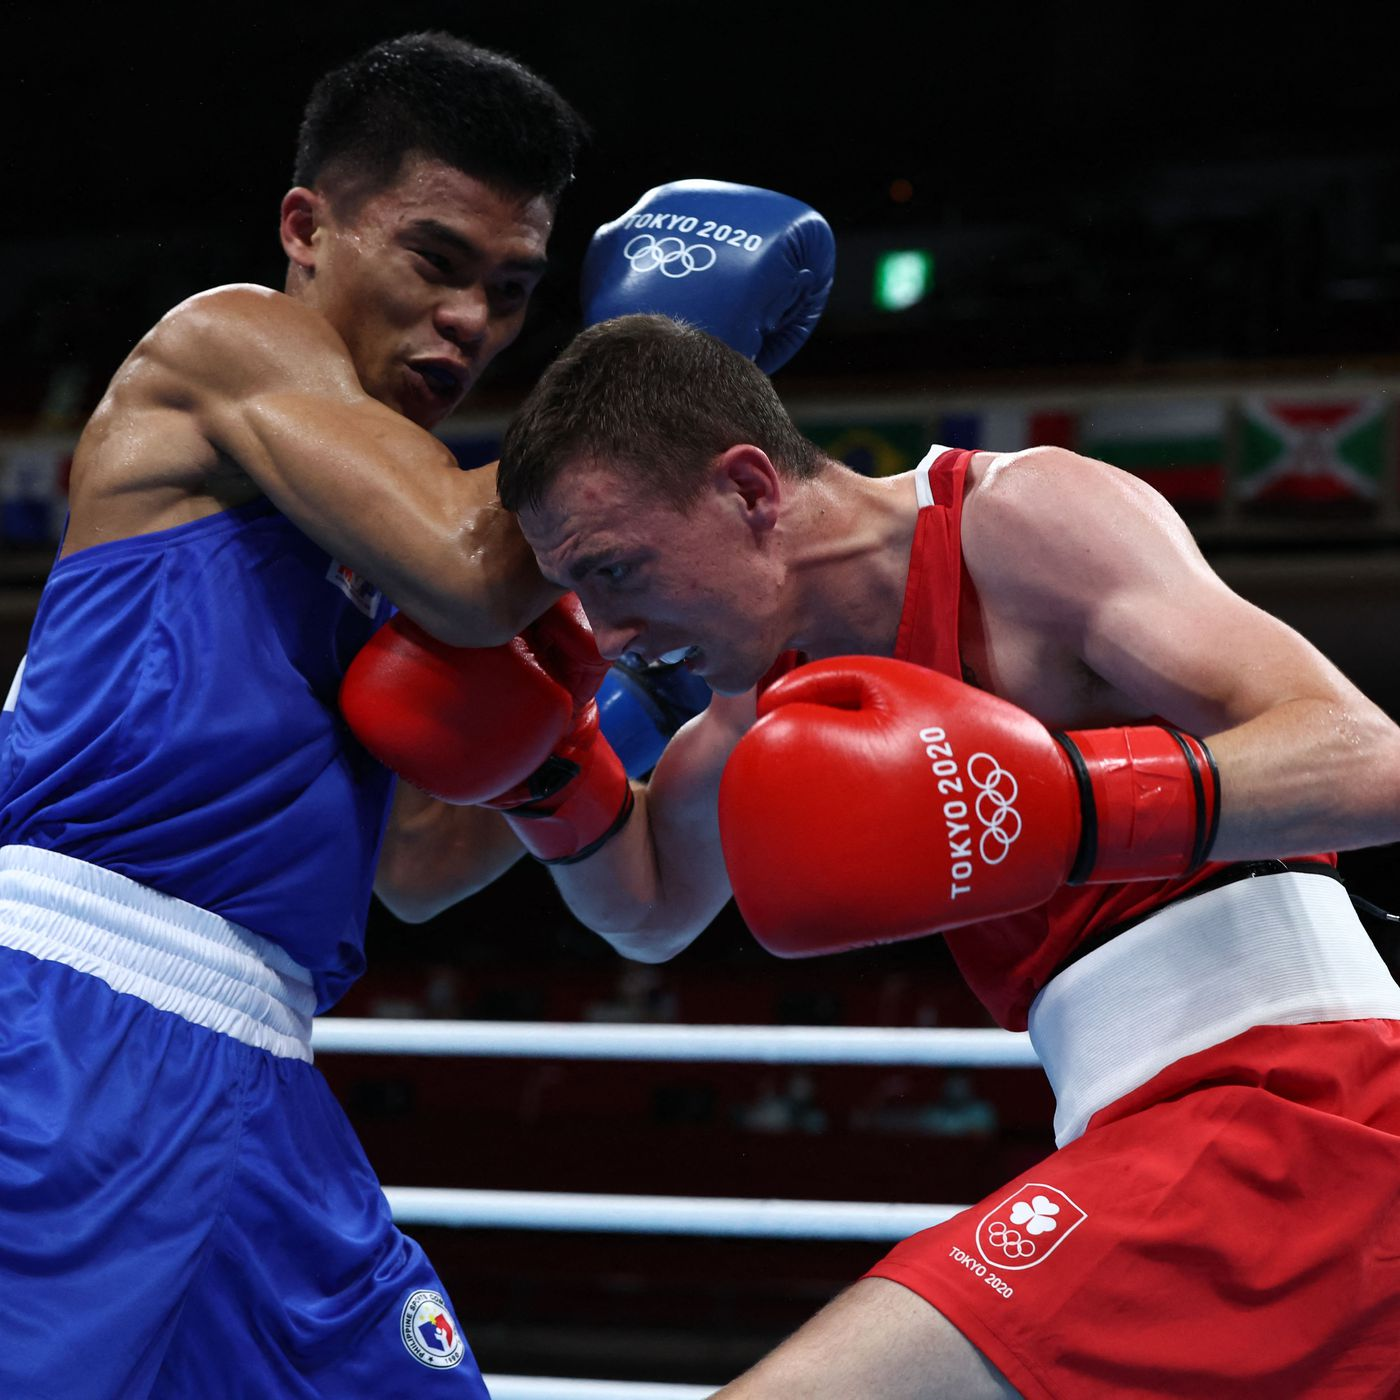 Kellie harrington claims fourth olympic medal for ireland with dominant win. Tokyo 2020 Boxing Results Day 3 Morning Session Full Recap Bad Left Hook